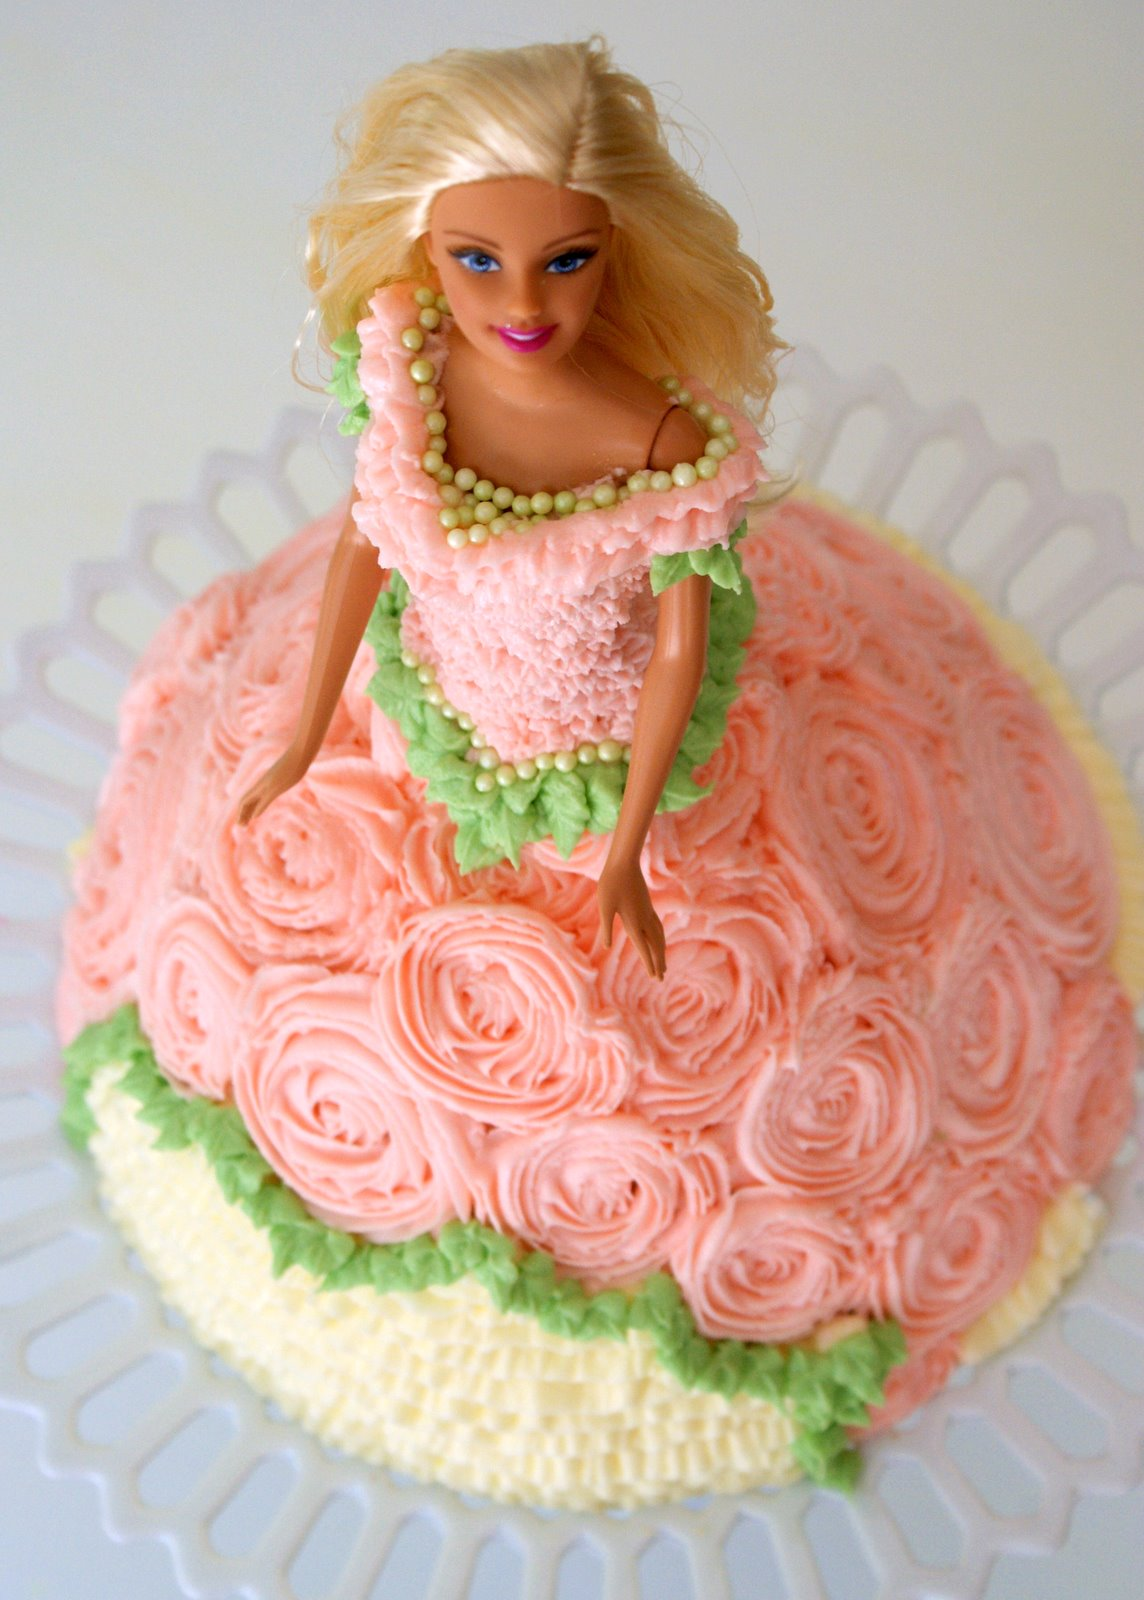 Cake Decoration Doll : A Little Loveliness: Barbie Doll Cake